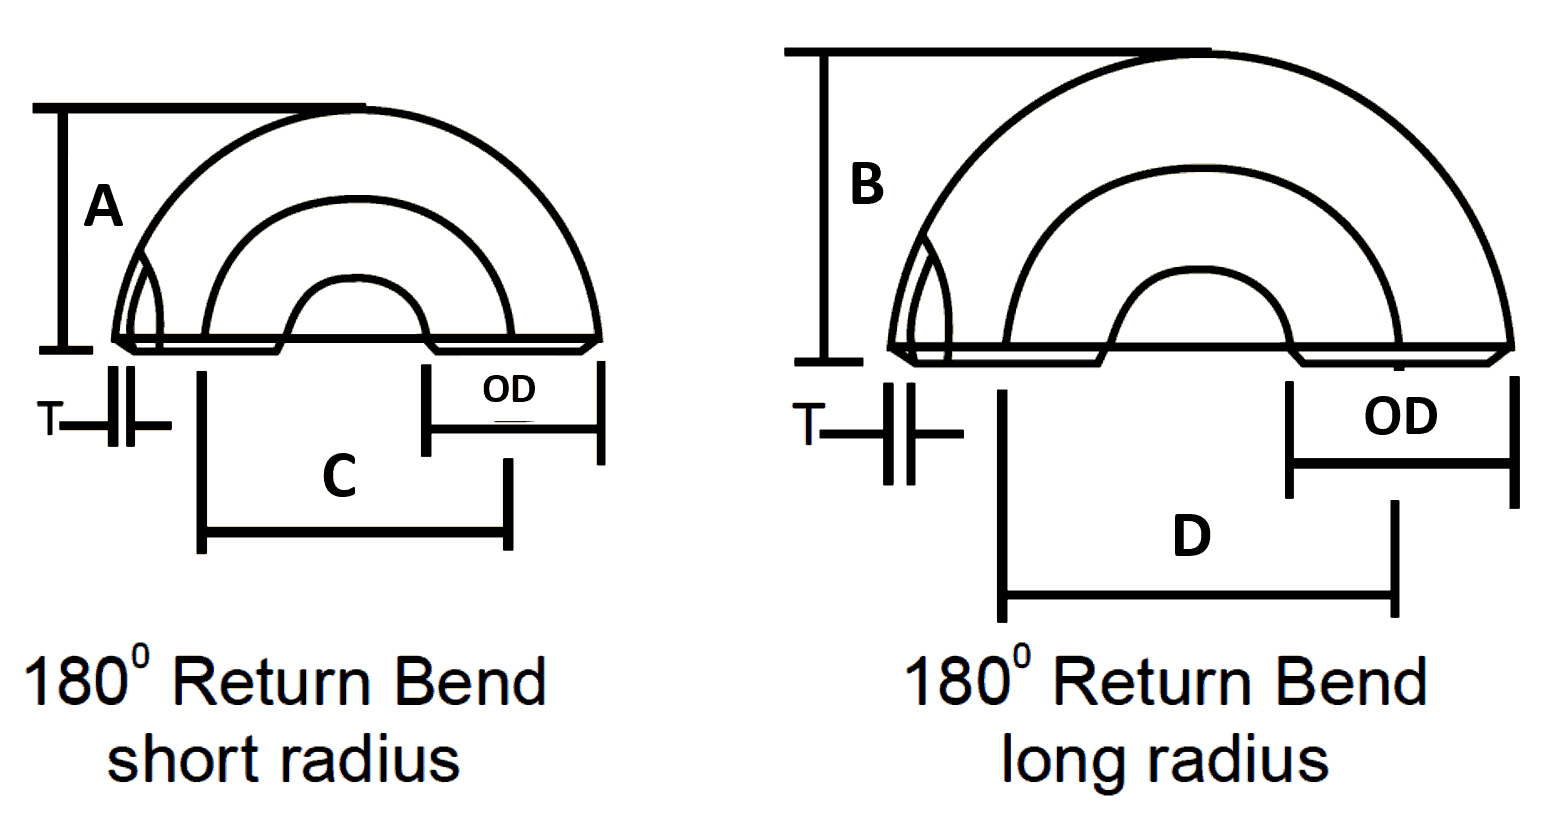 180 degree returns bend dimension